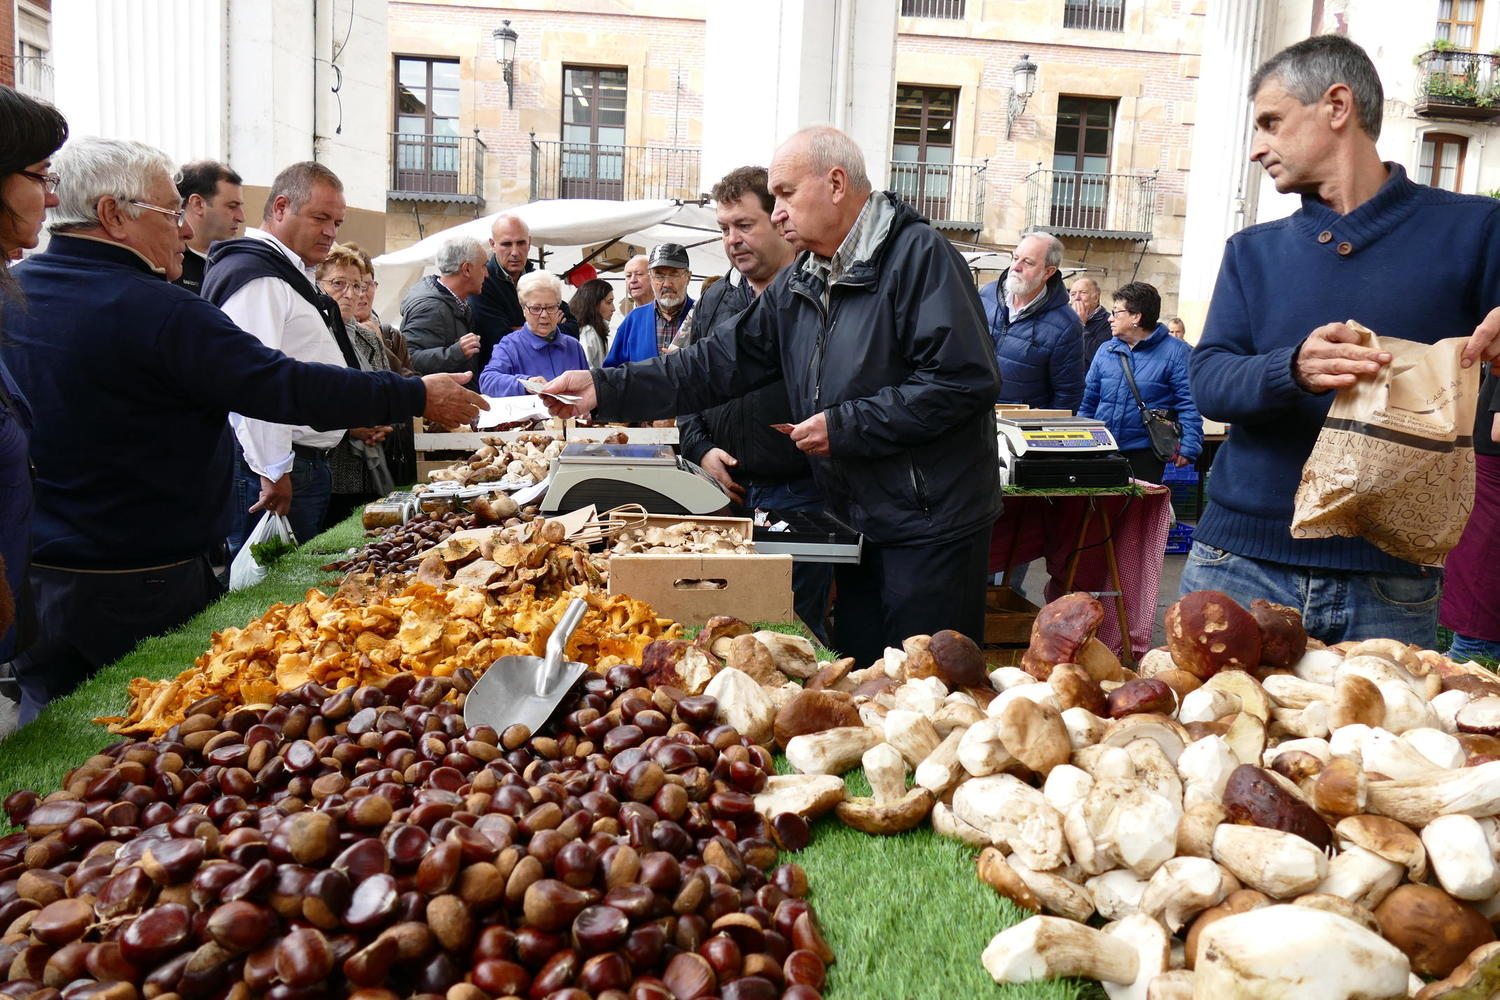 Inspecting the autumnal haul of mushrooms in the market